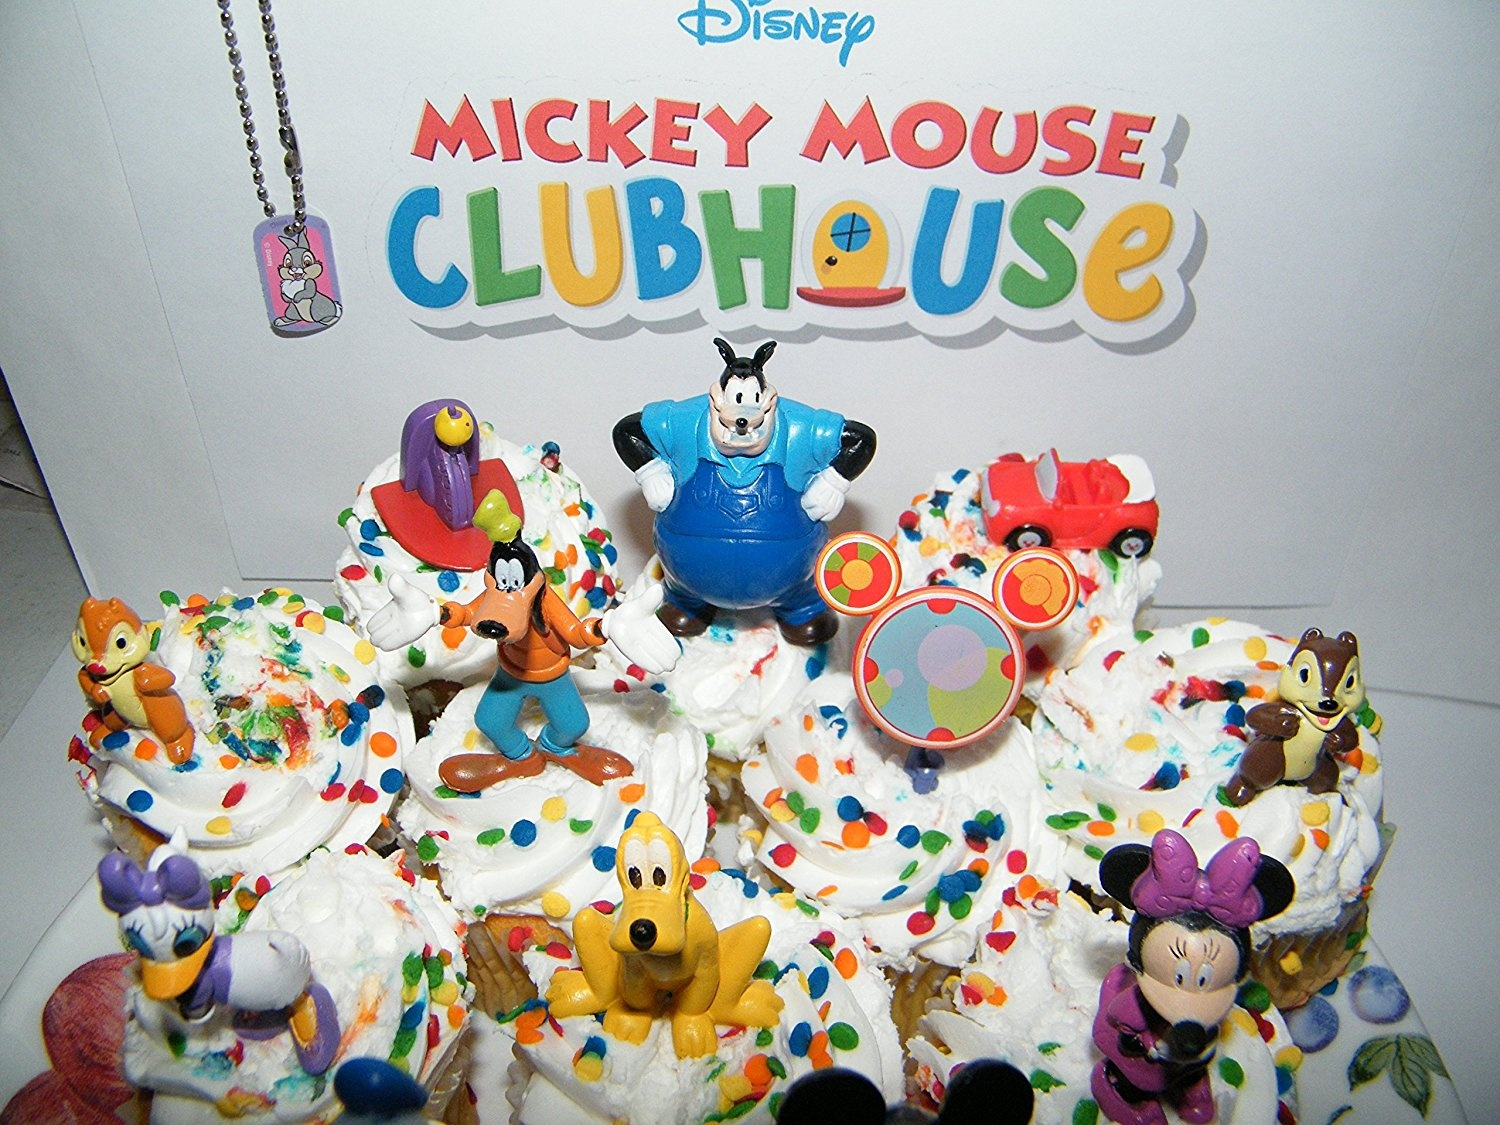 Mickey Mouse Clubhouse Deluxe Birthday Cake Topper Set   ***BRAND NEW***